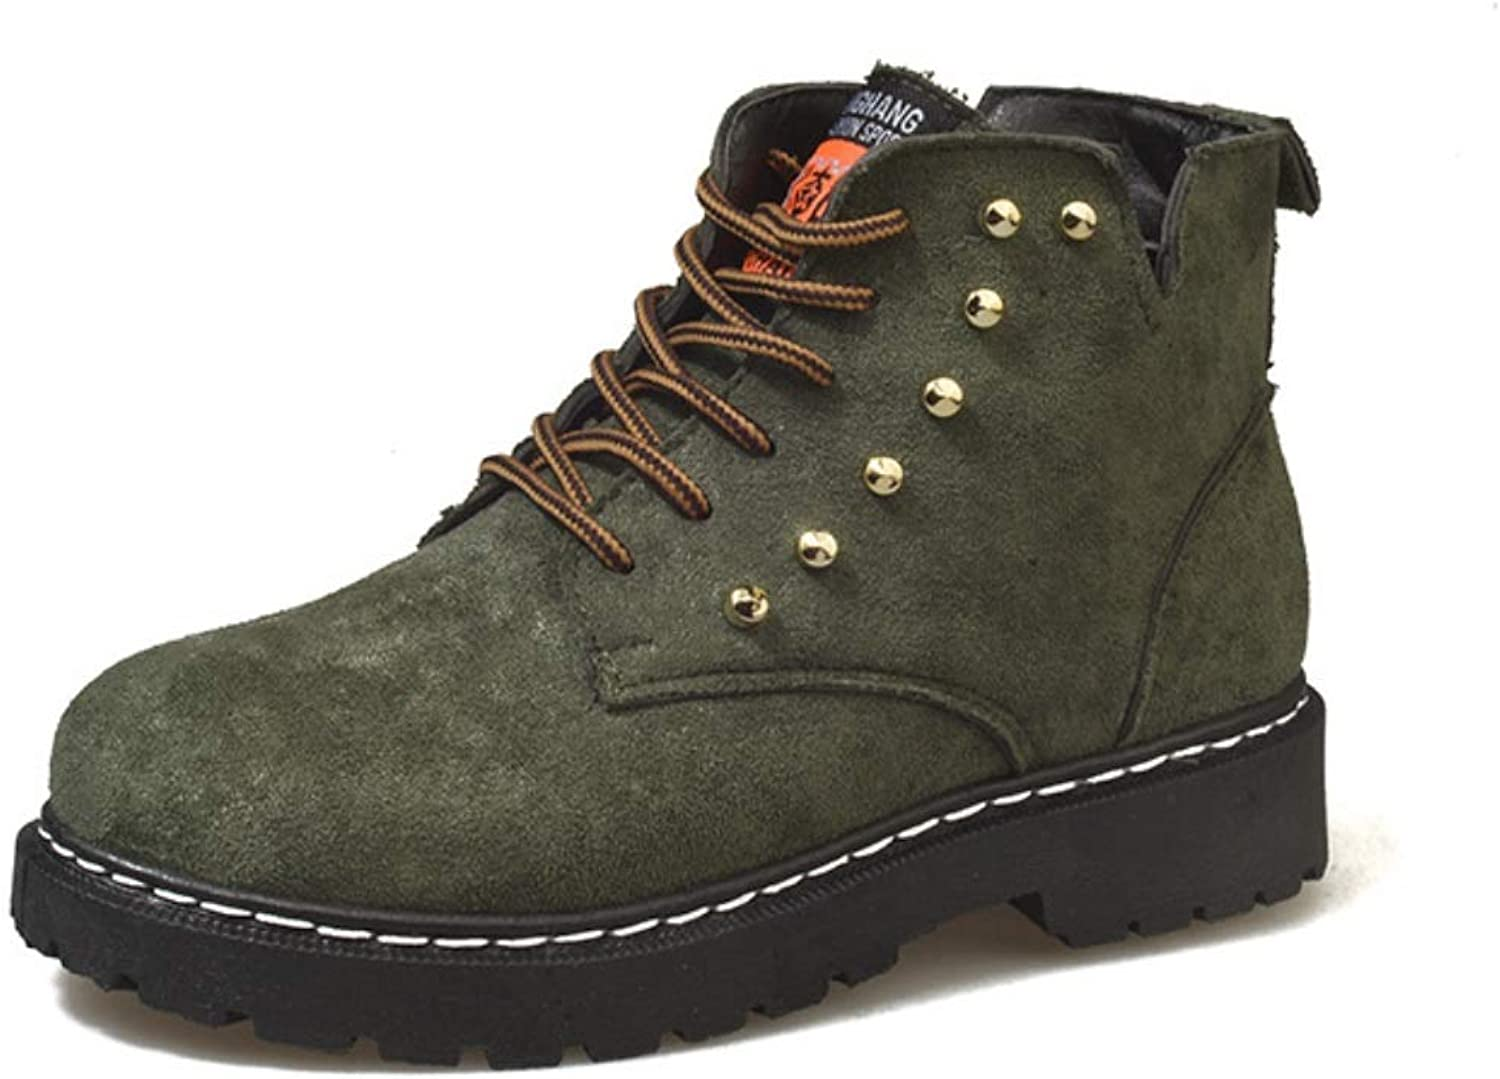 Womens Winter Flat Ankle Boots Trainer Lace Up Casual Boots Fur Lined Grip Sole Walking Hiking shoes Size Comfortable Keep Warm